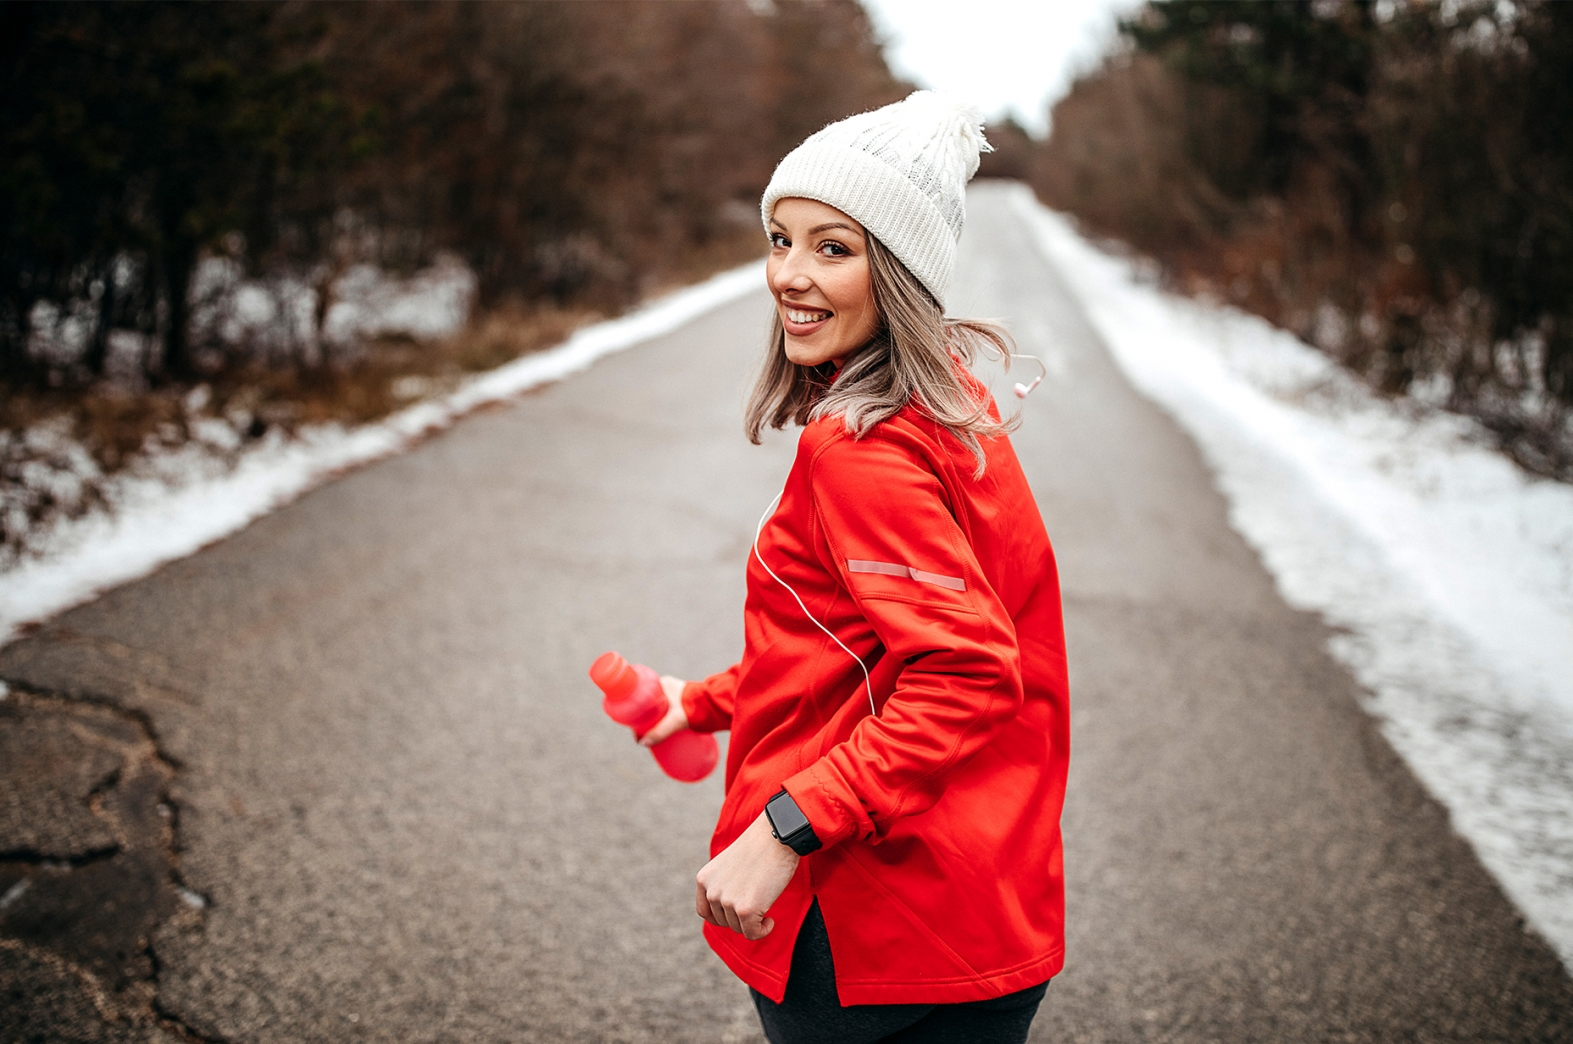 Junge Dame, blond mit roter Jacke